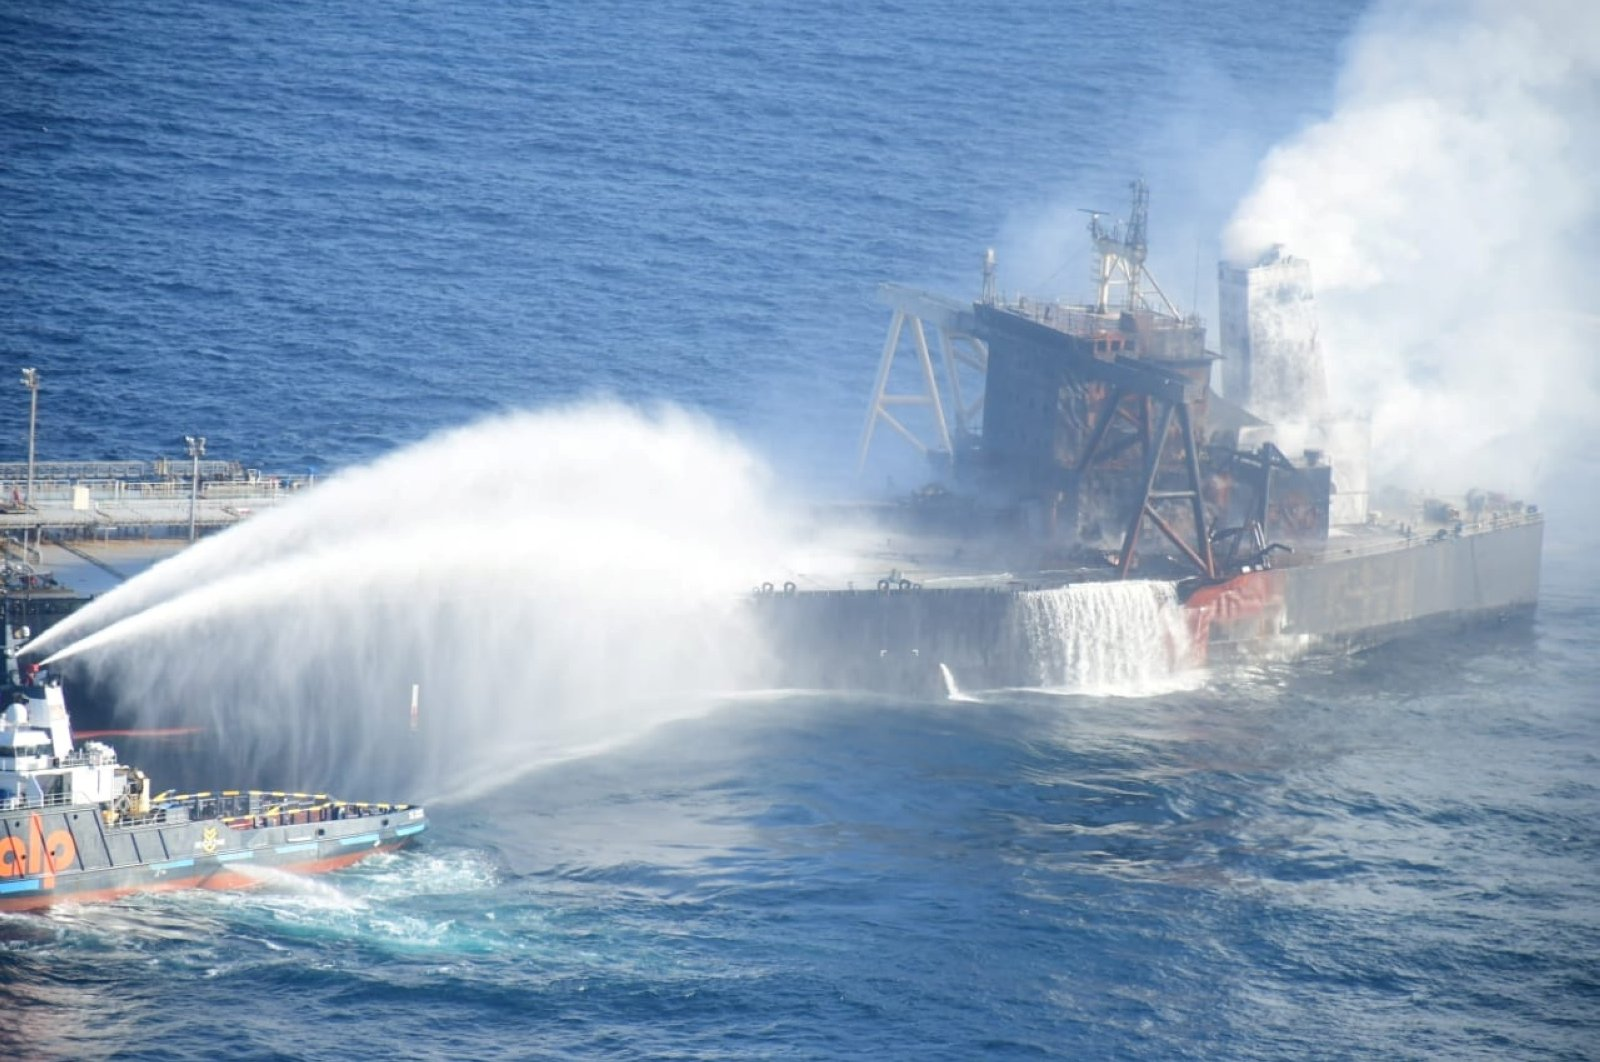 A Sri Lanka Navy boat sprays water on the New Diamond, a very large crude carrier (VLCC) chartered by Indian Oil Corp (IOC), that was carrying the equivalent of about 2 million barrels of oil, after a fire broke out off the east coast of Sri Lanka, Sept. 6, 2020. (Sri Lankan Airforce media Photo via Reuters)